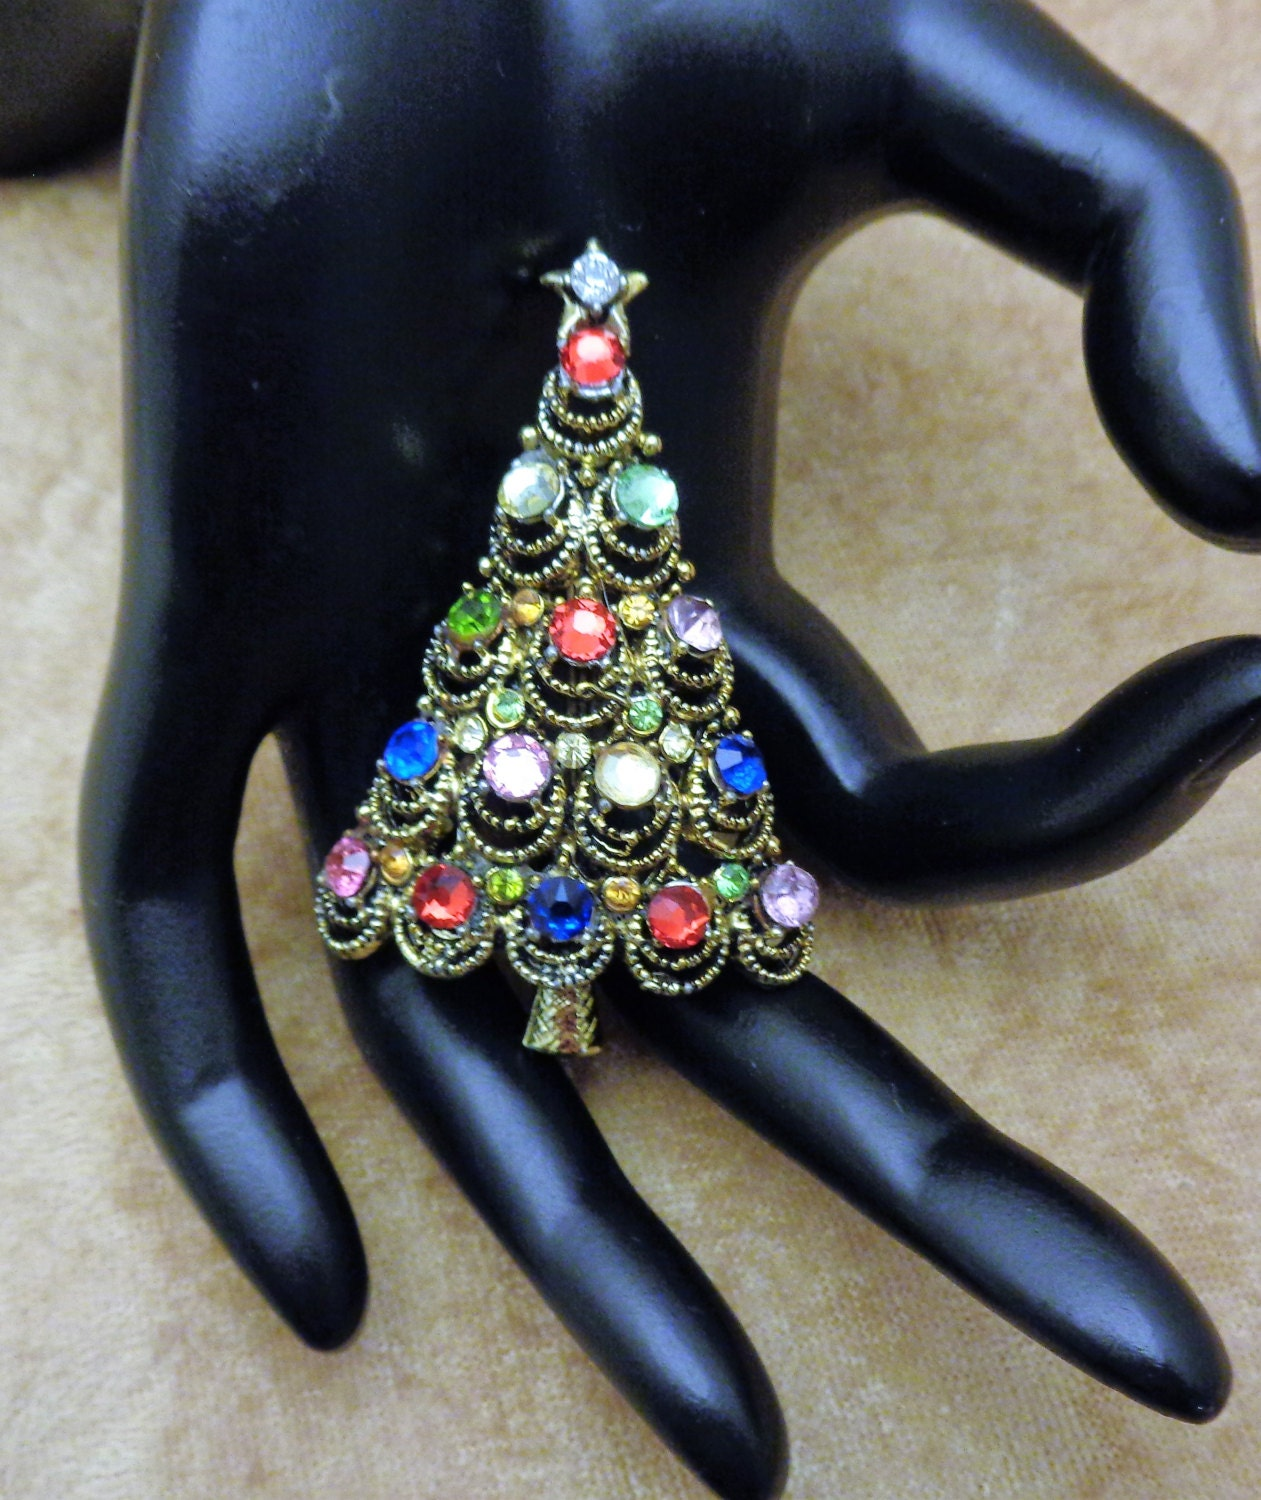 37577dcab Hollycraft Colorful Rhinestone Christmas Tree Pin 1950s Hollycraft  Rhinestone Christmas Tree Brooch Mid Century Vintage Christmas Pin